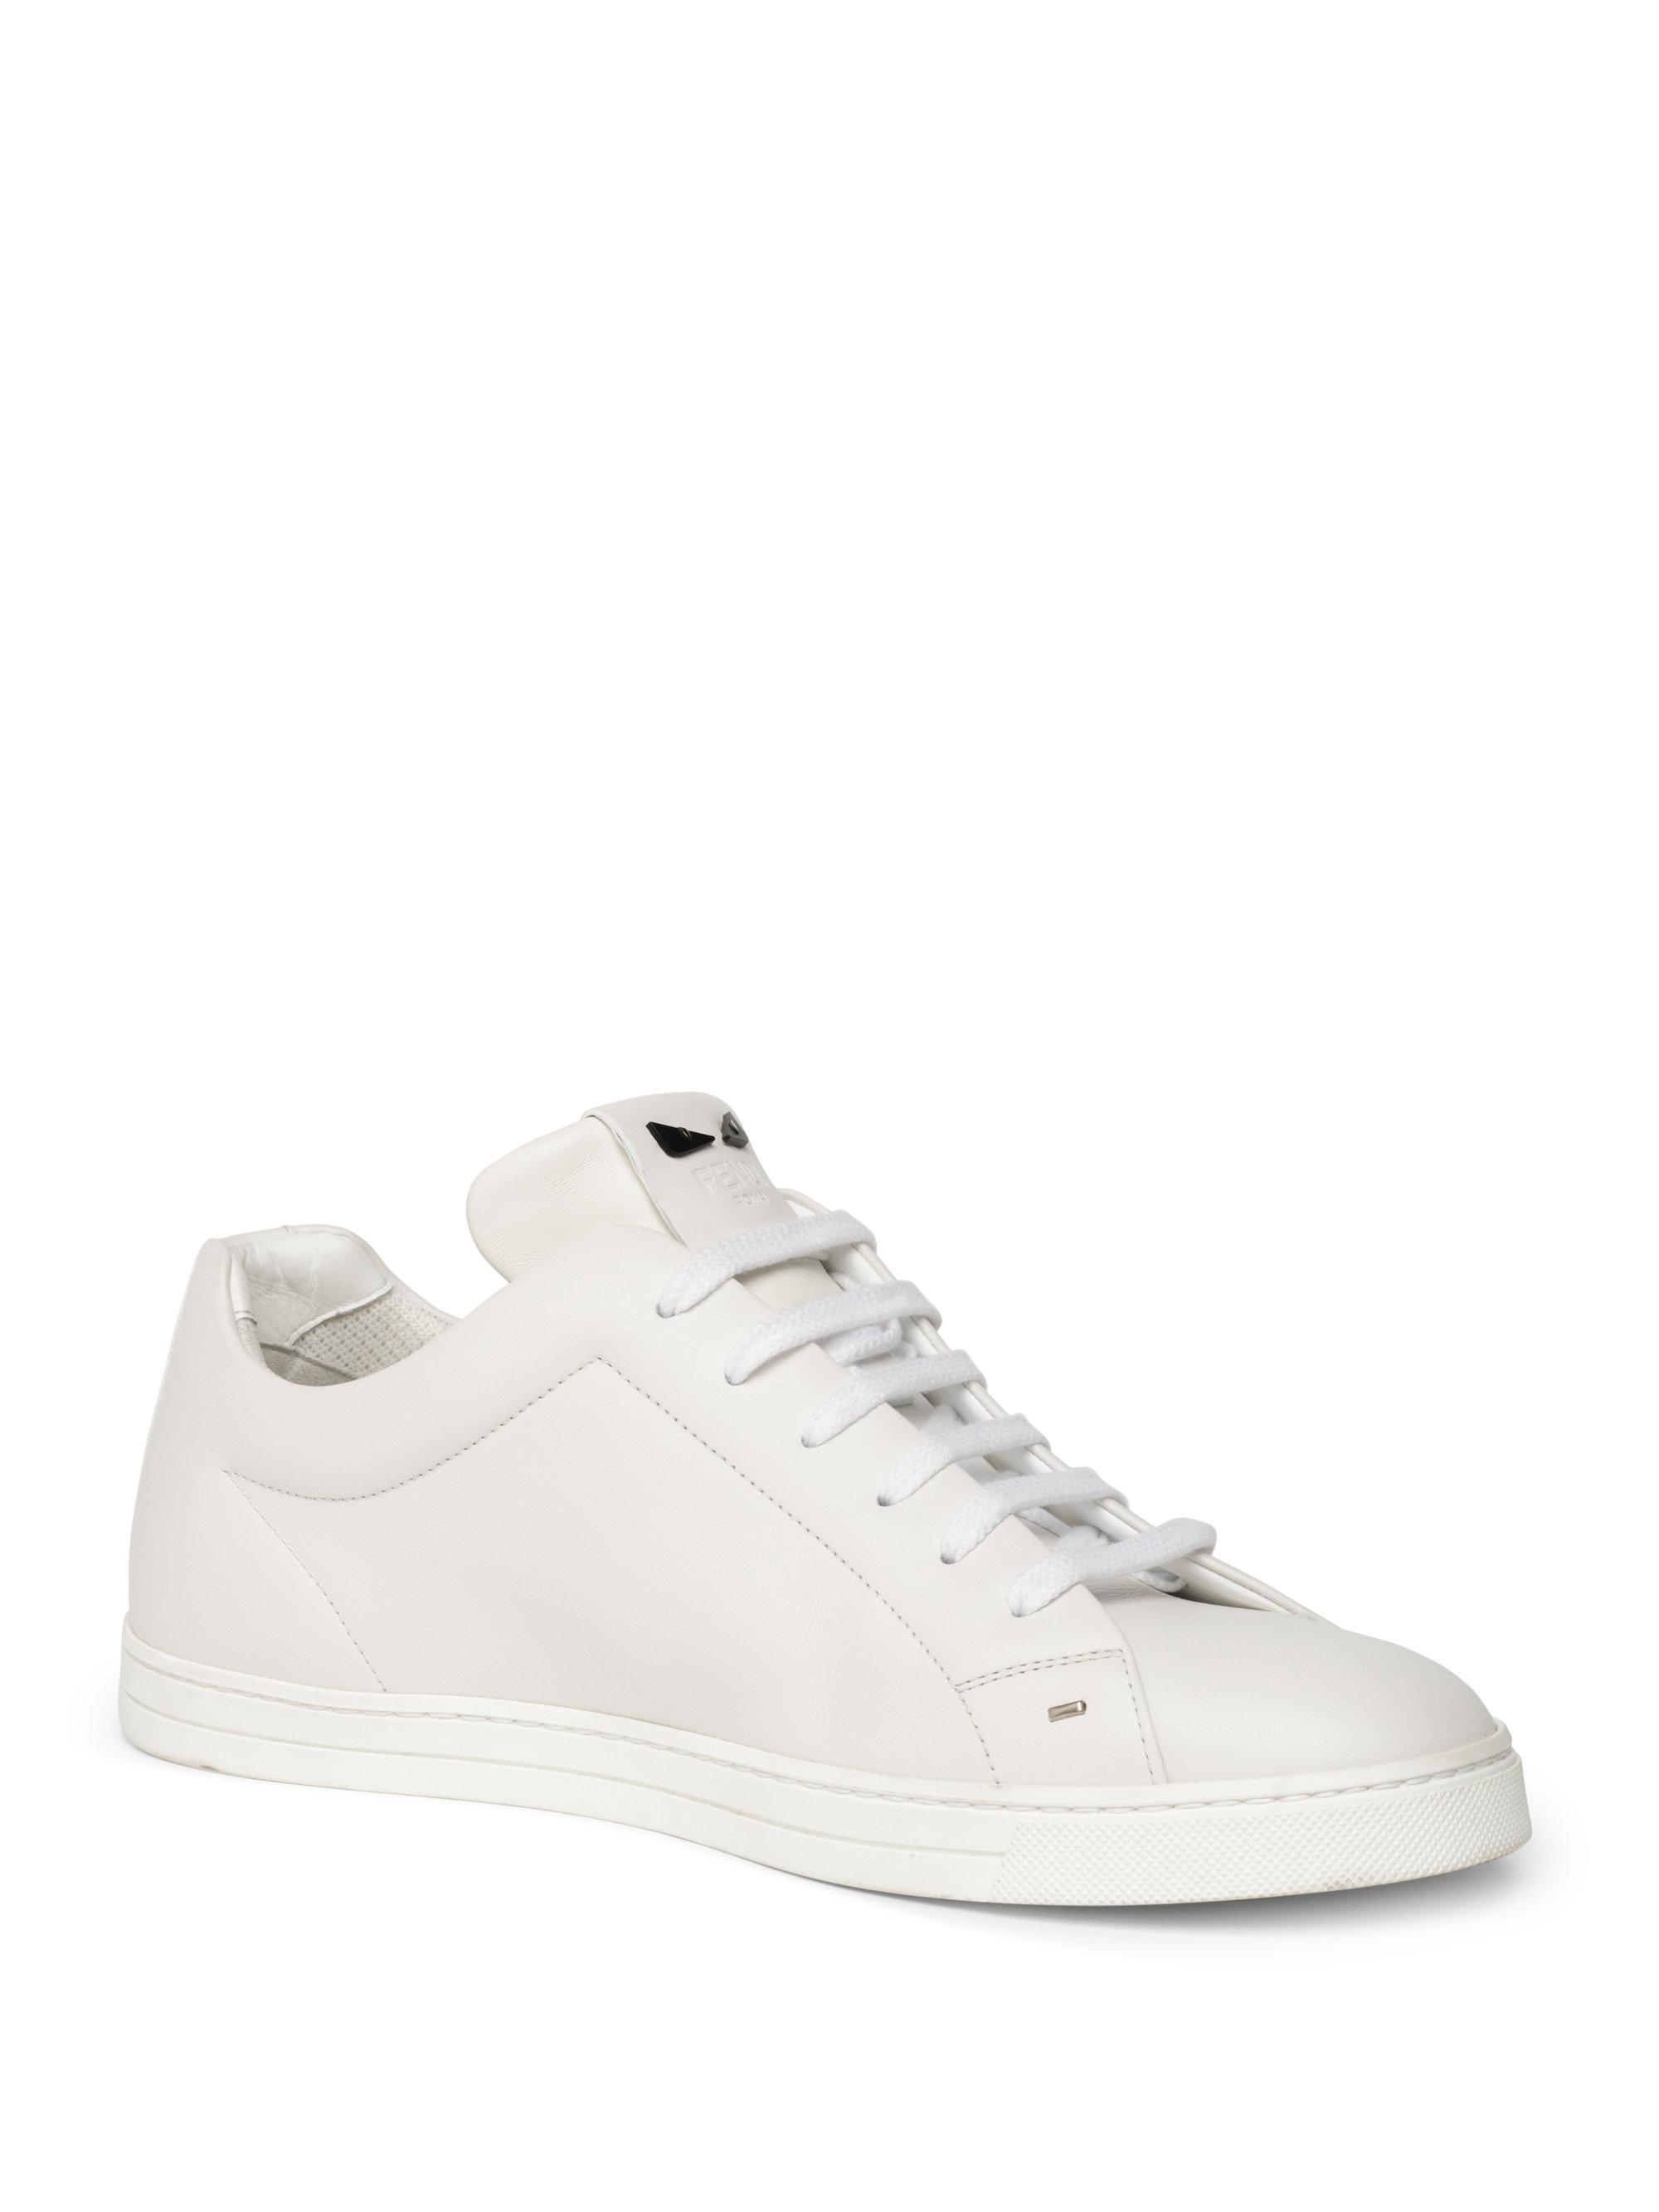 de1a8a6d44 Men's White Micro Bugs Leather Sneakers